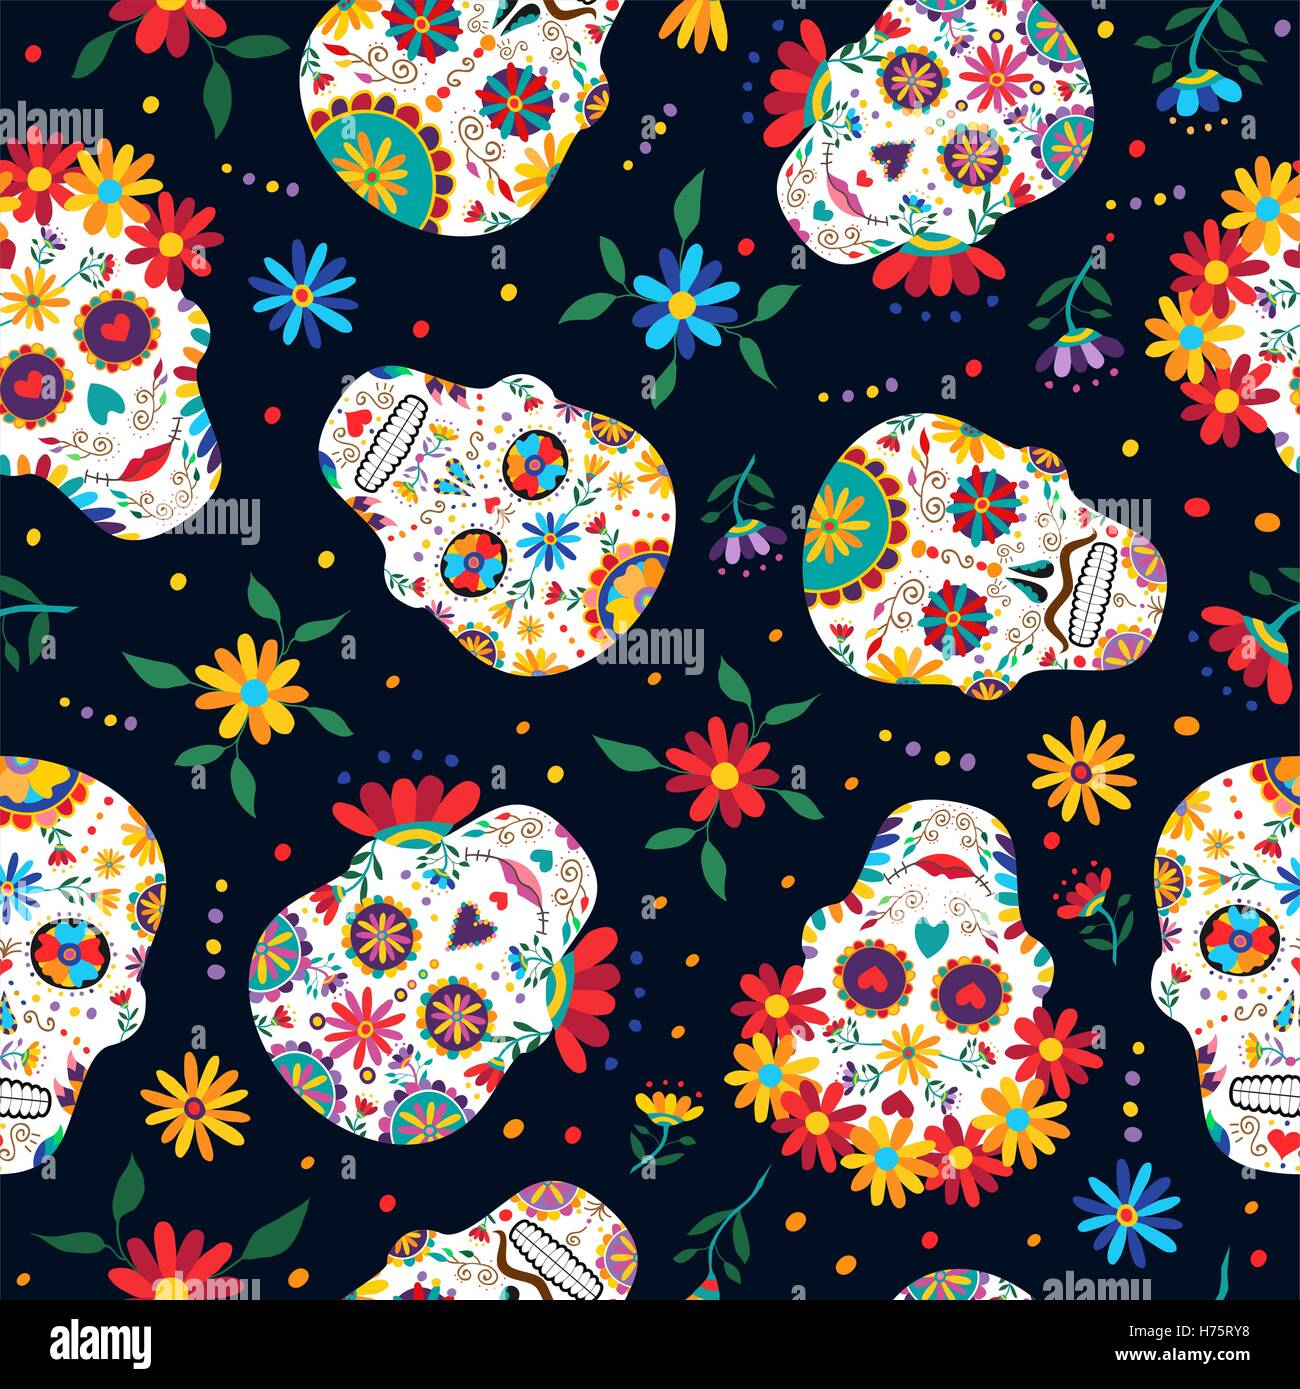 day of the dead seamless pattern with traditional mexican sugar